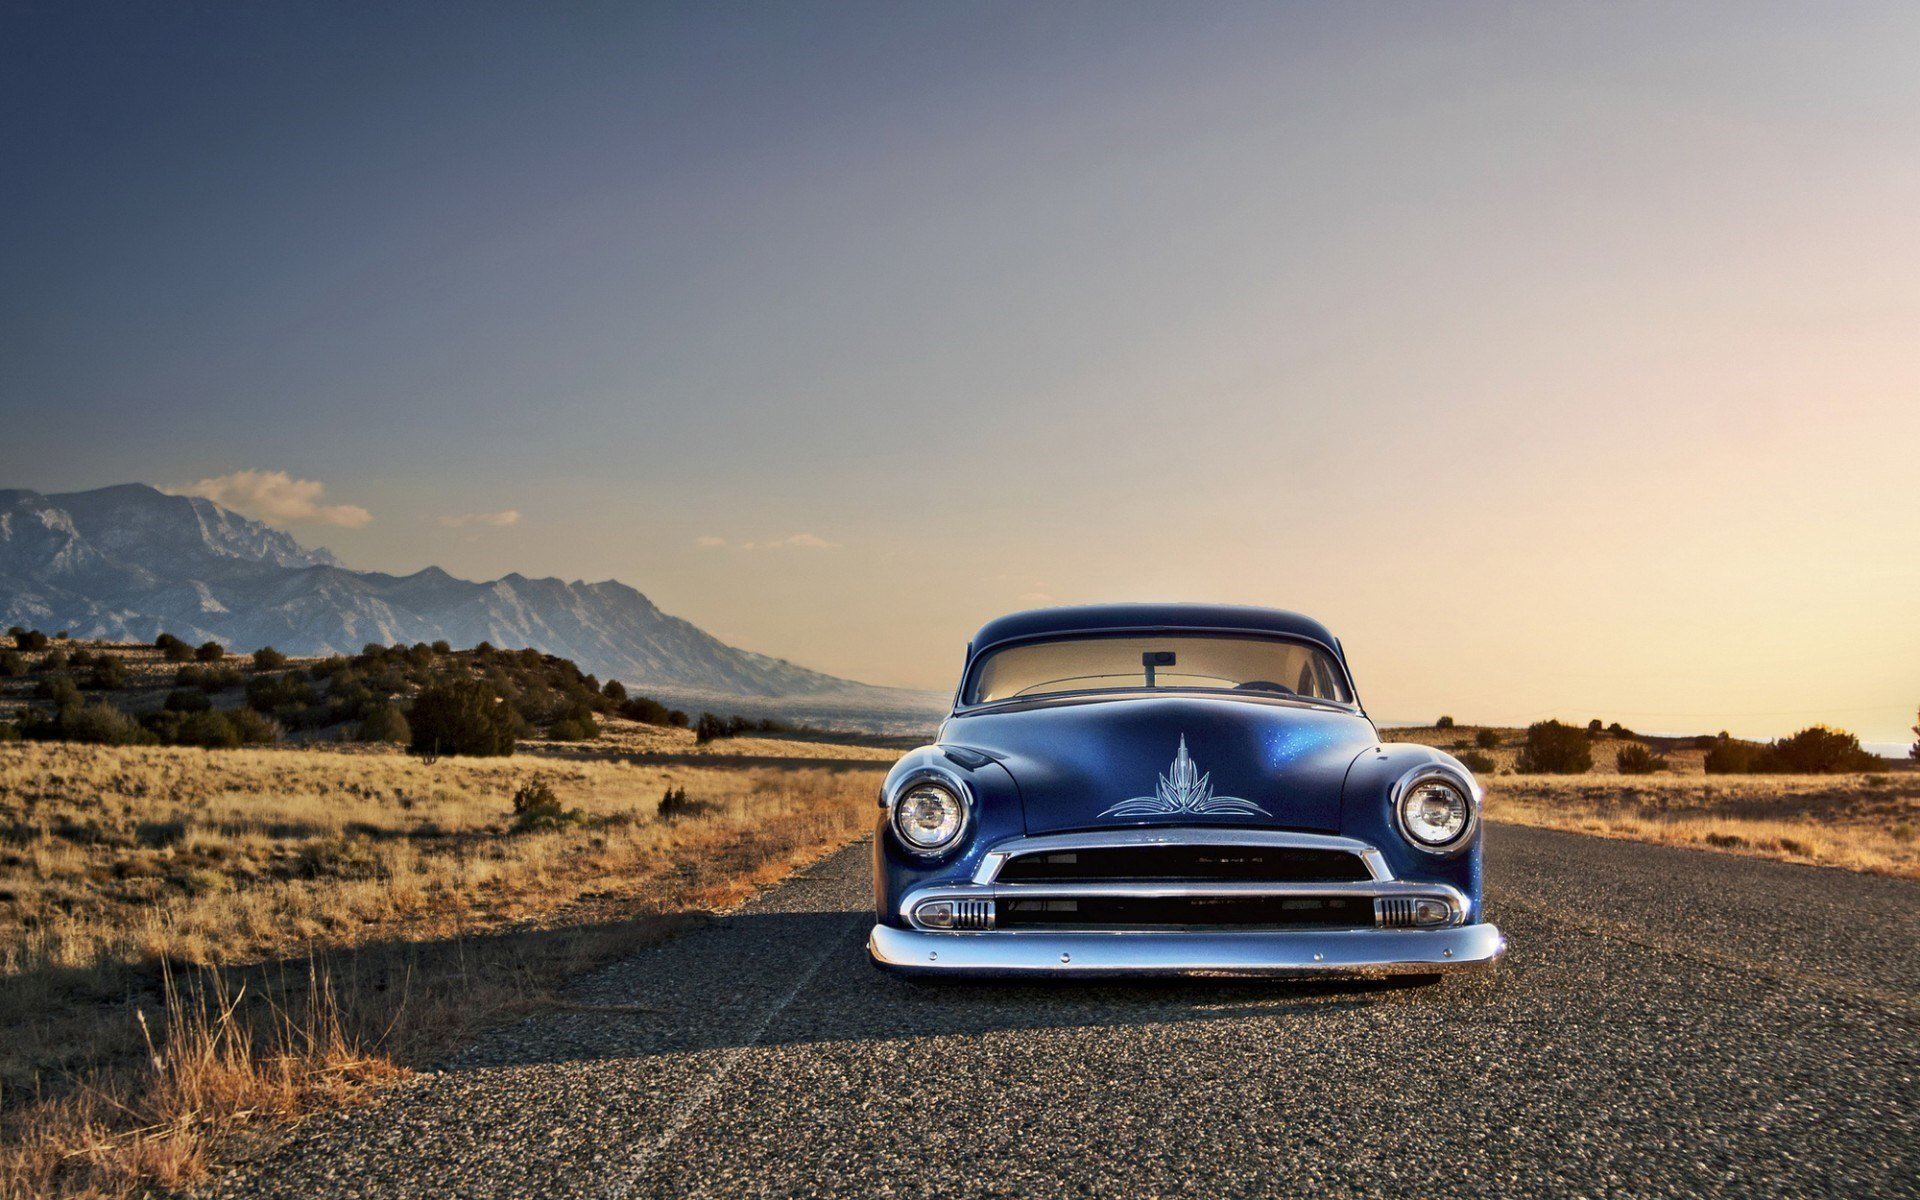 New Car Blue Cars Hot Rod Chevy Chevrolet Desert On This Month